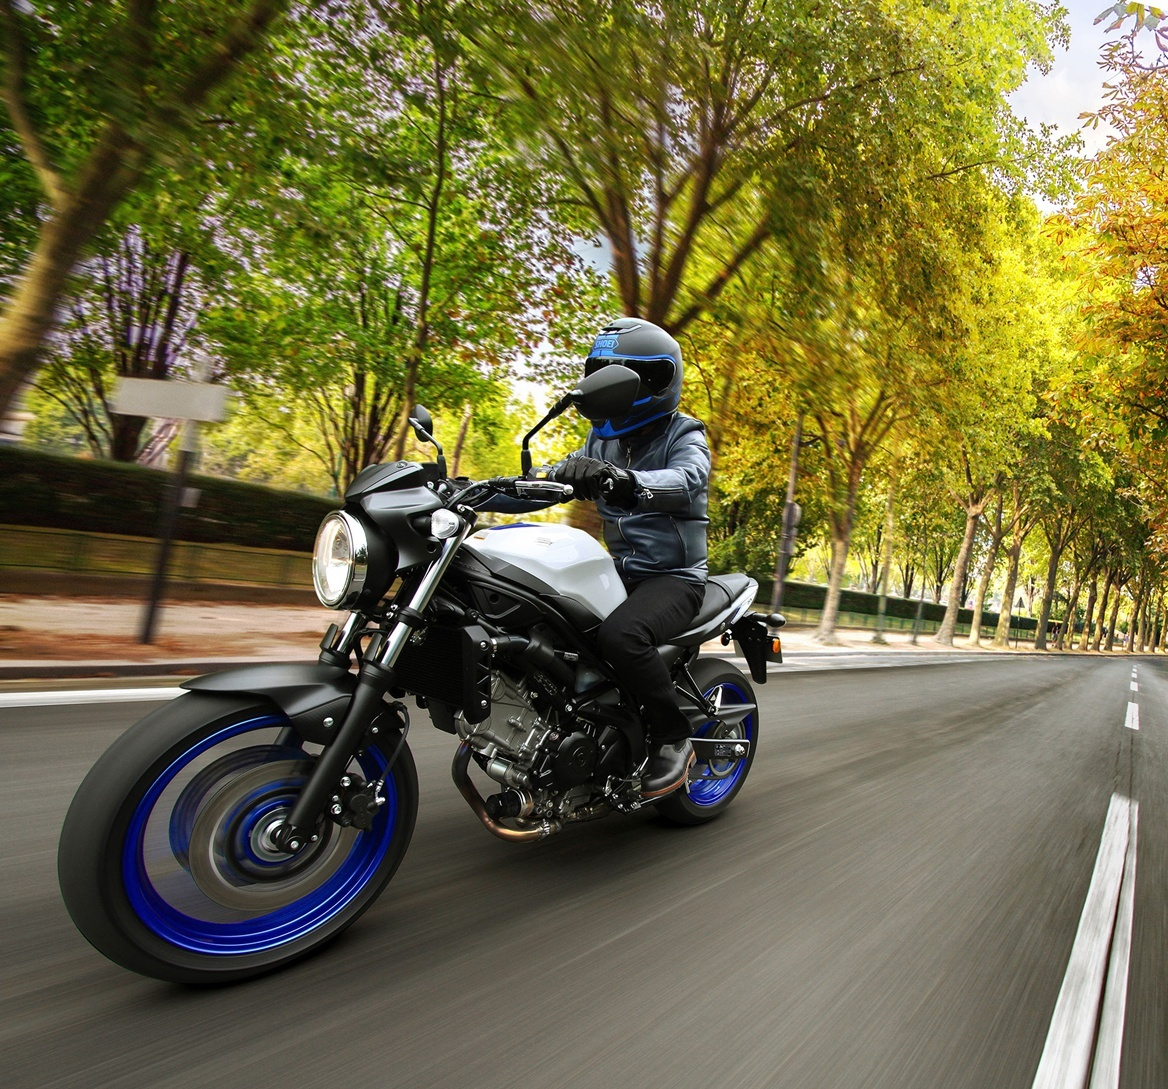 2017 Suzuki SV650 in Visalia, California